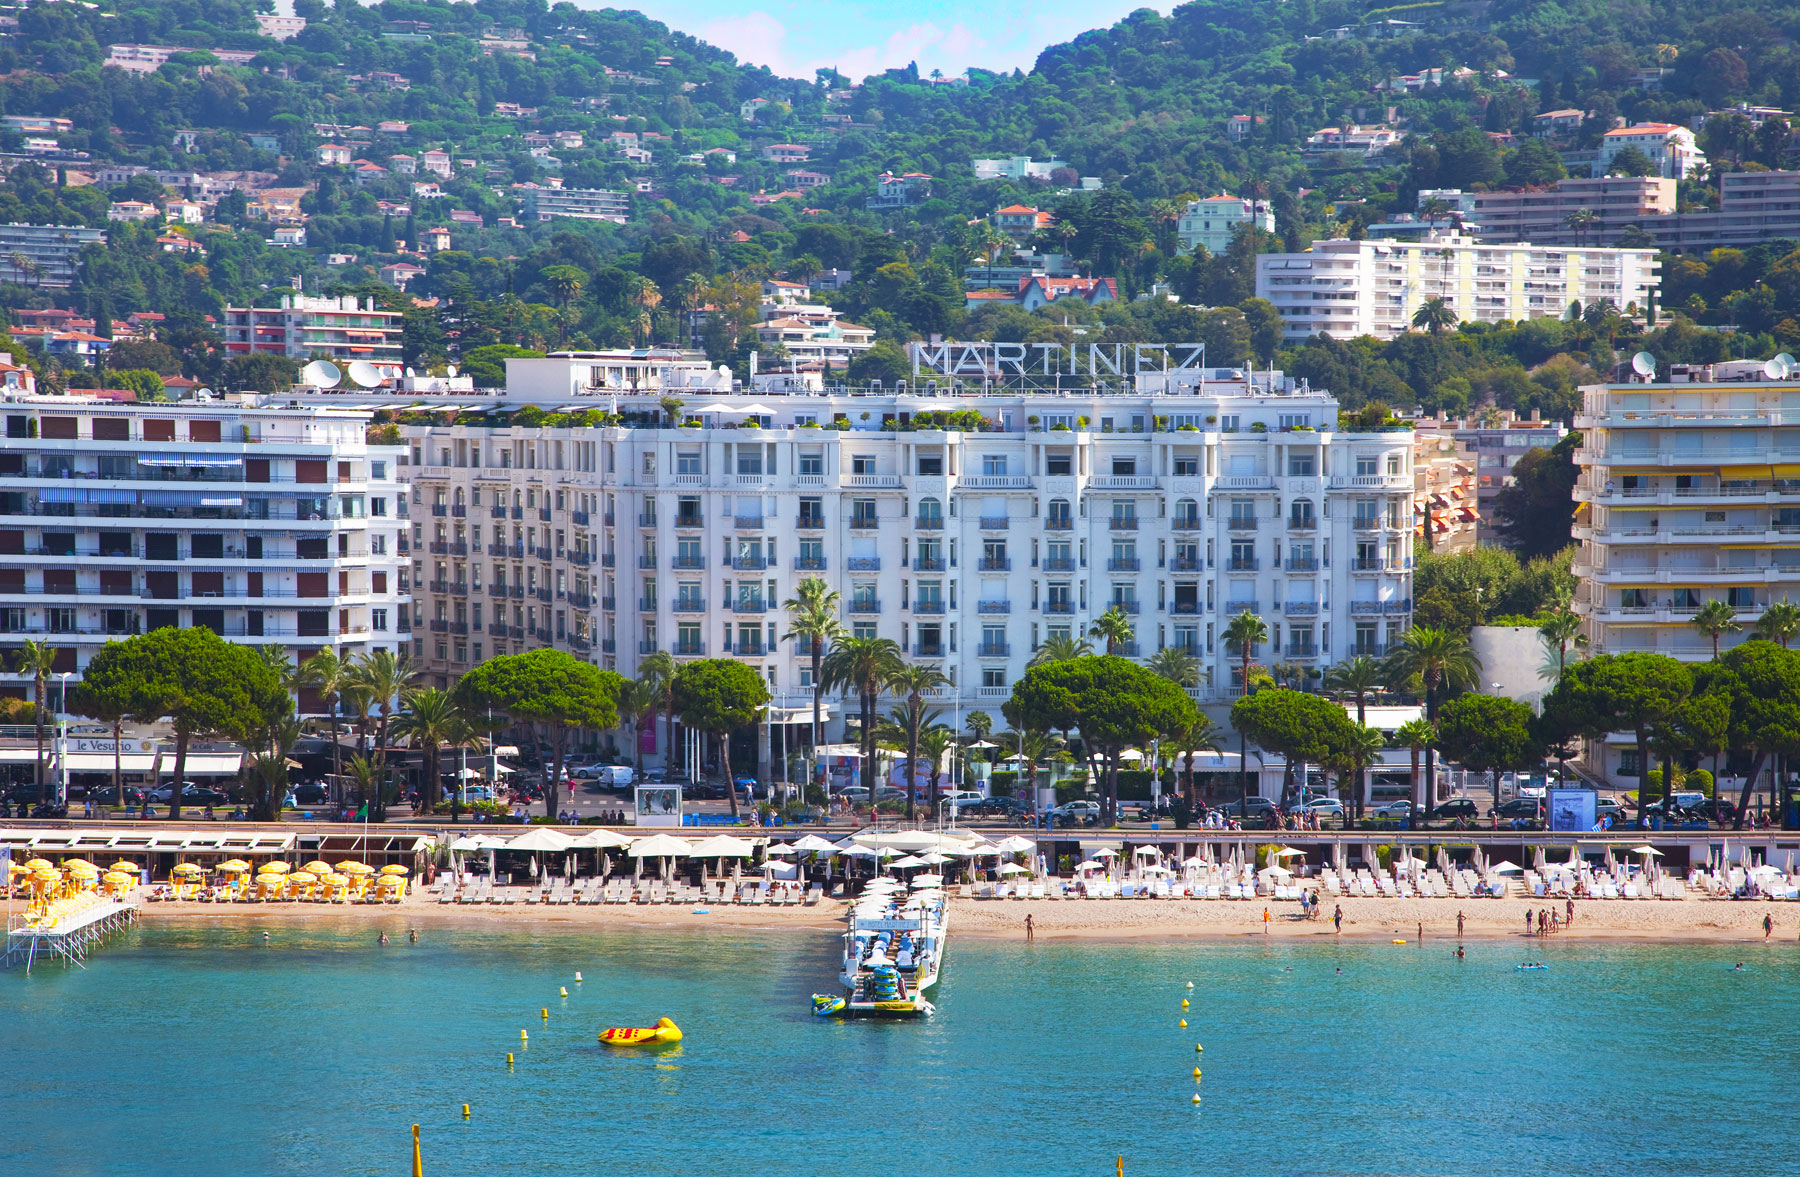 The Grand Hyatt Cannes Hotel Martinez